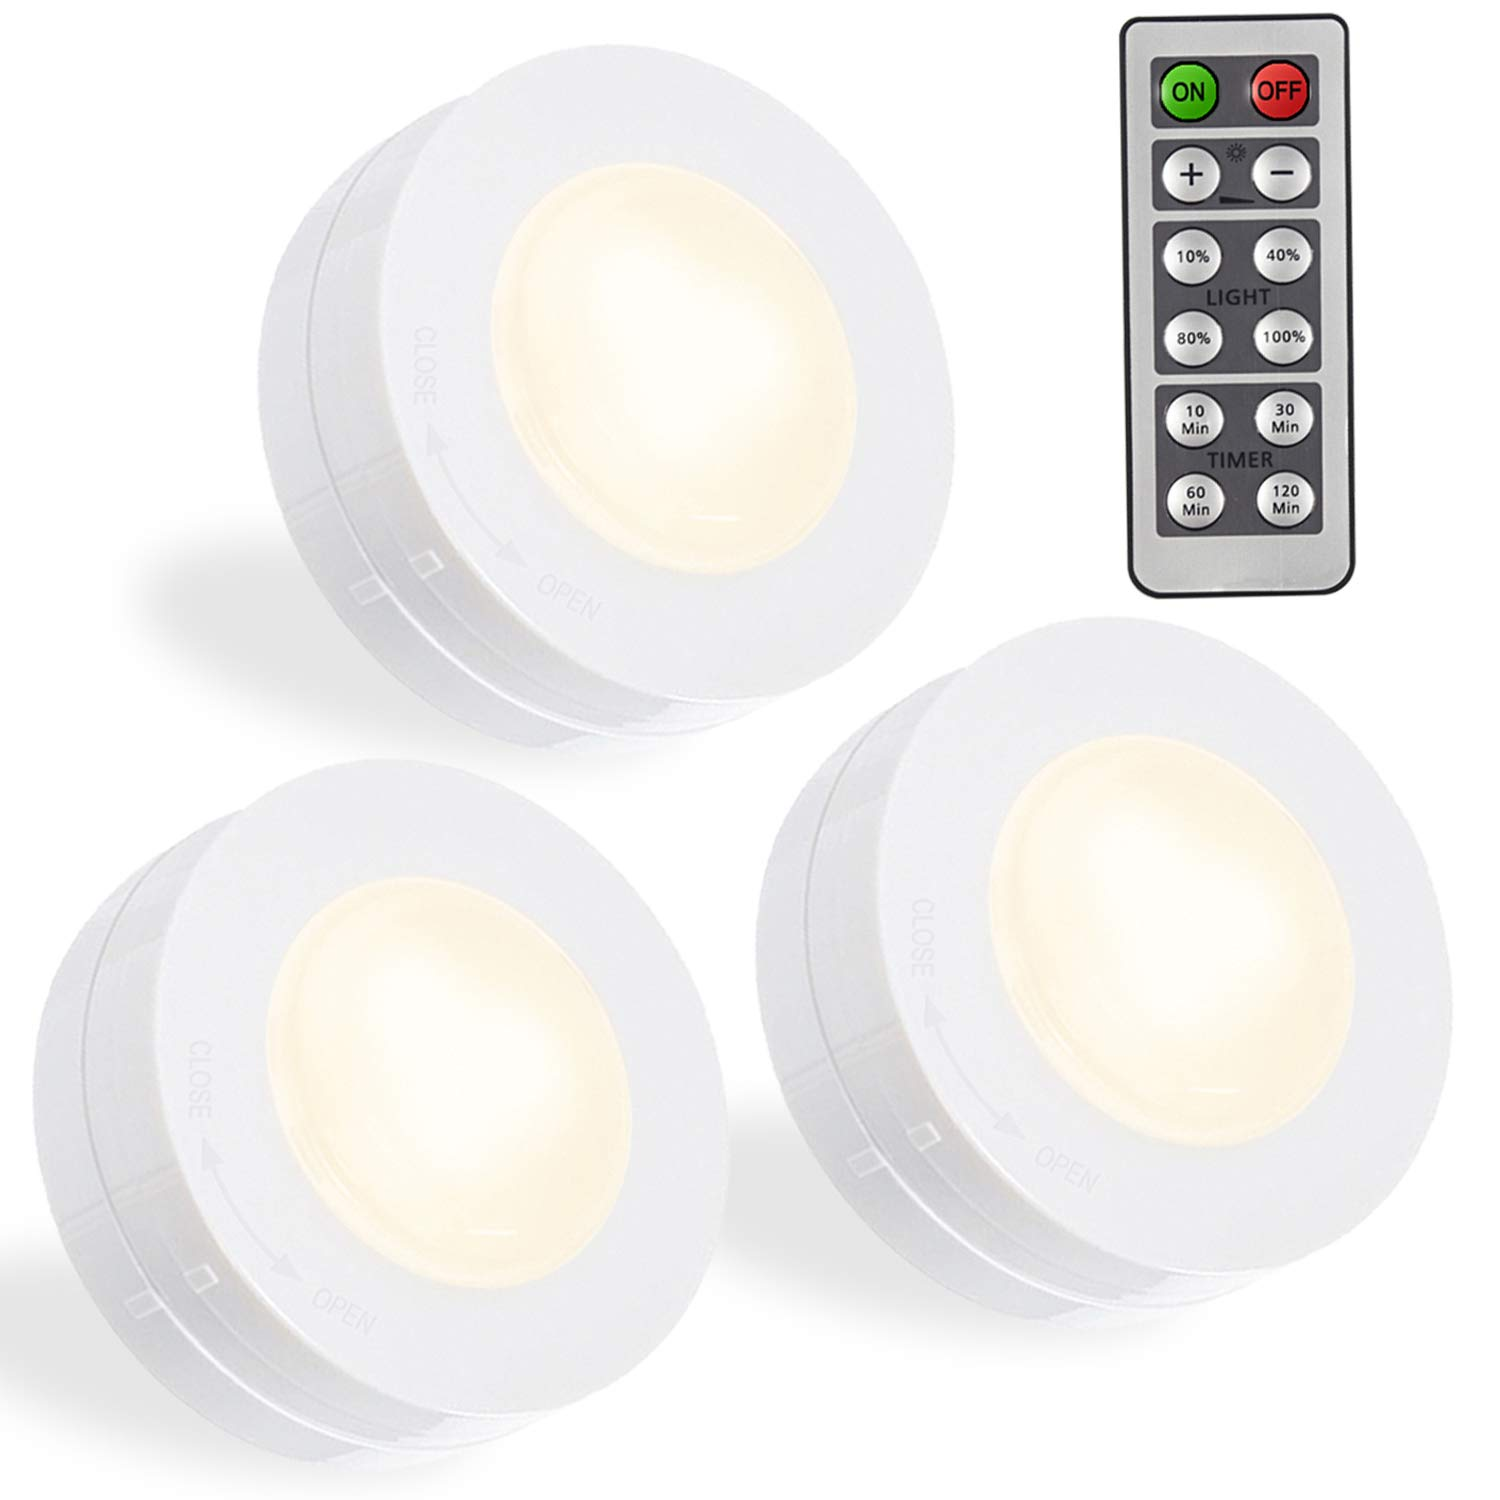 SALKING LED Puck Lights, Wireless LED Under Cabinet Lighting with Remote, Closet Light Battery Operated, Dimmable Under Counter Lights for Kitchen, Natural White-3 Pack by Salking (Image #1)